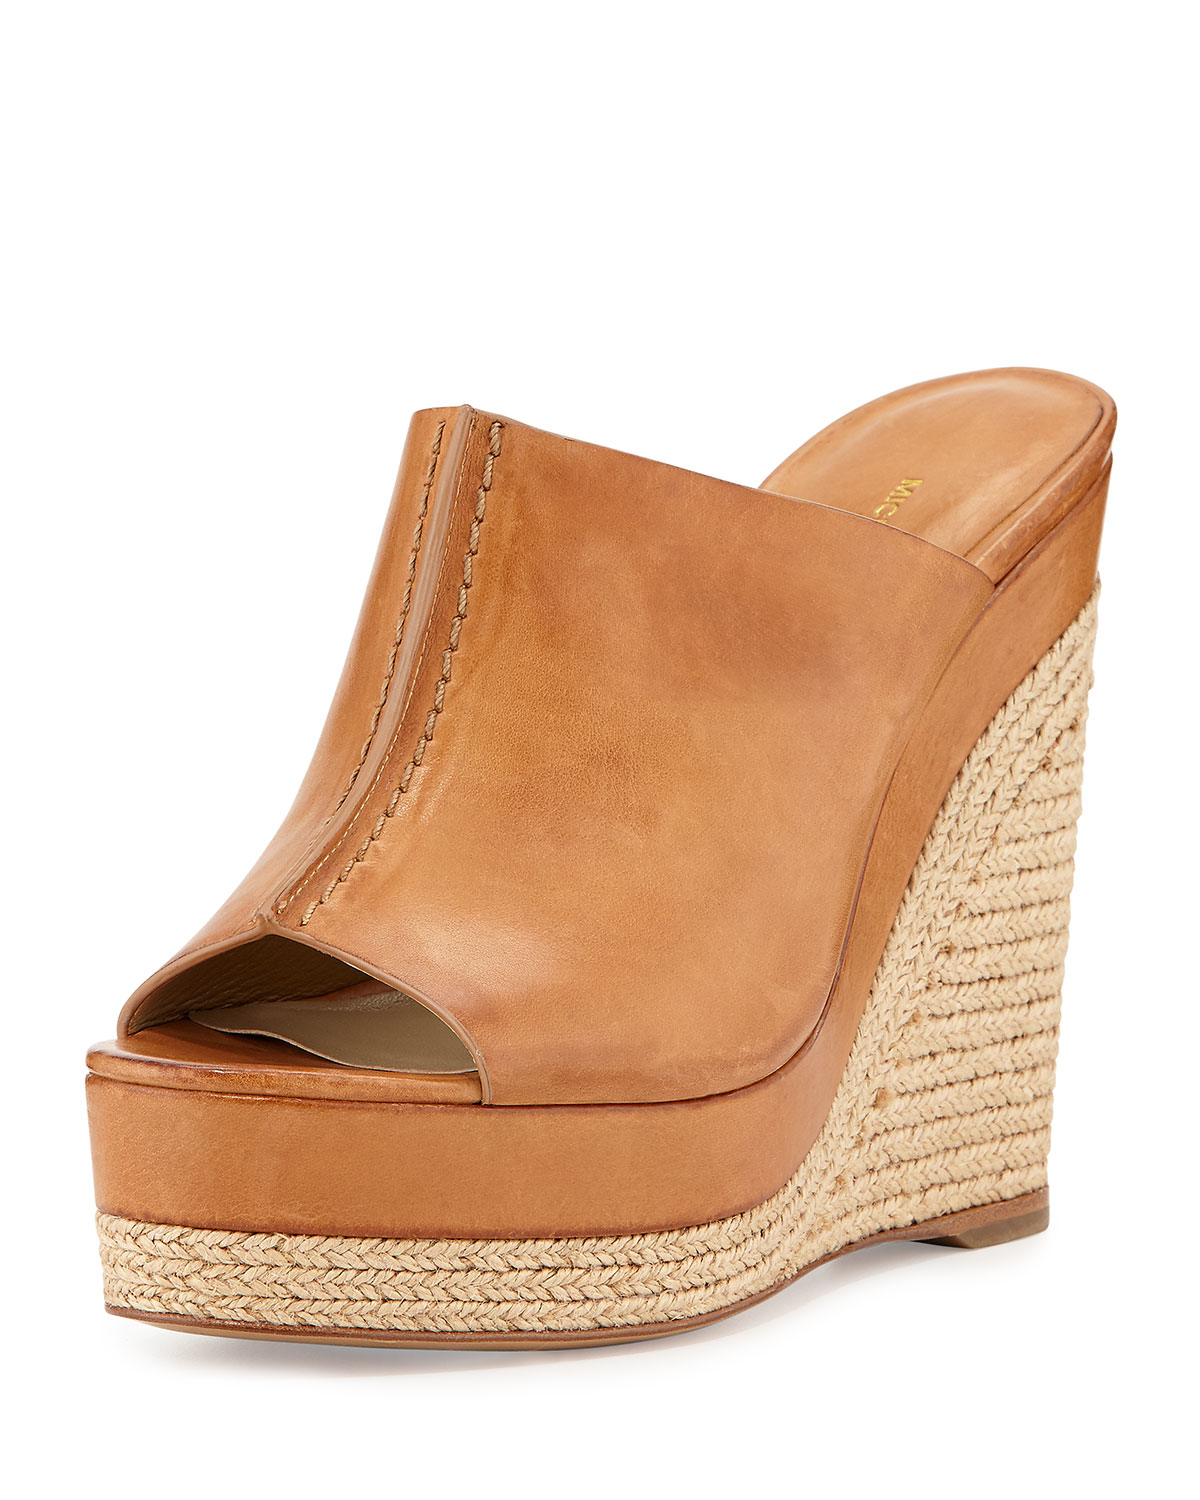 73c55cab47f Lyst - Michael Kors Charlize Leather Wedge Slide Sandal in Brown